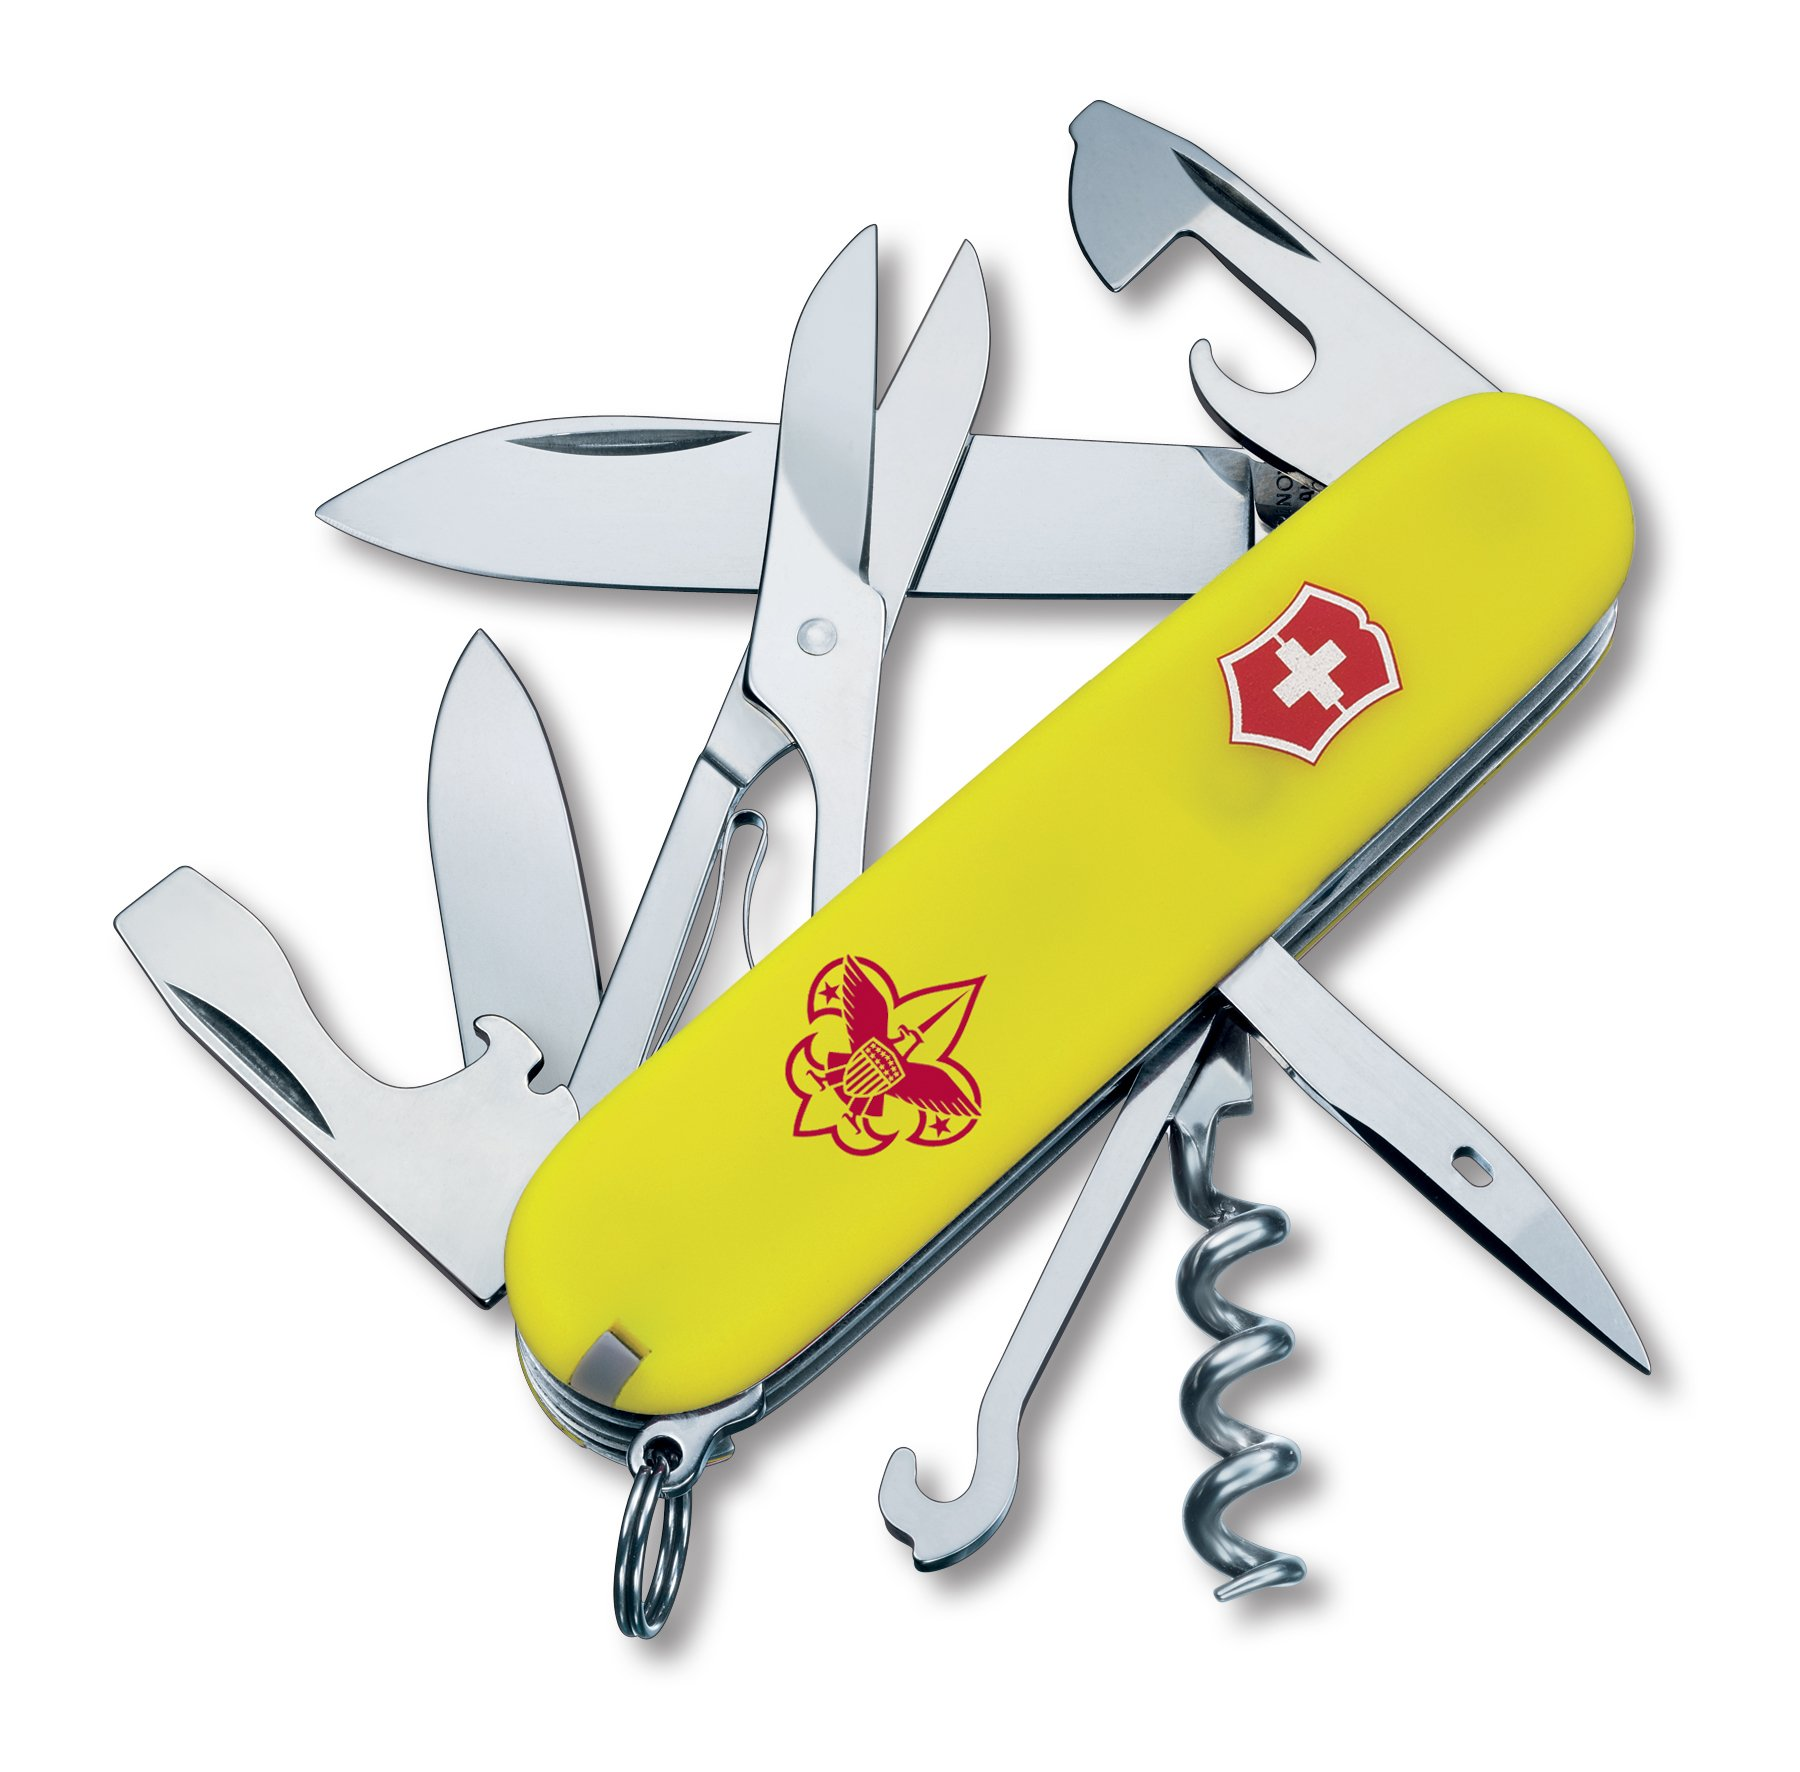 Victorinox Swiss Army 54389 Climber Boy Scout Knife, 91mm, Stayglow Yellow